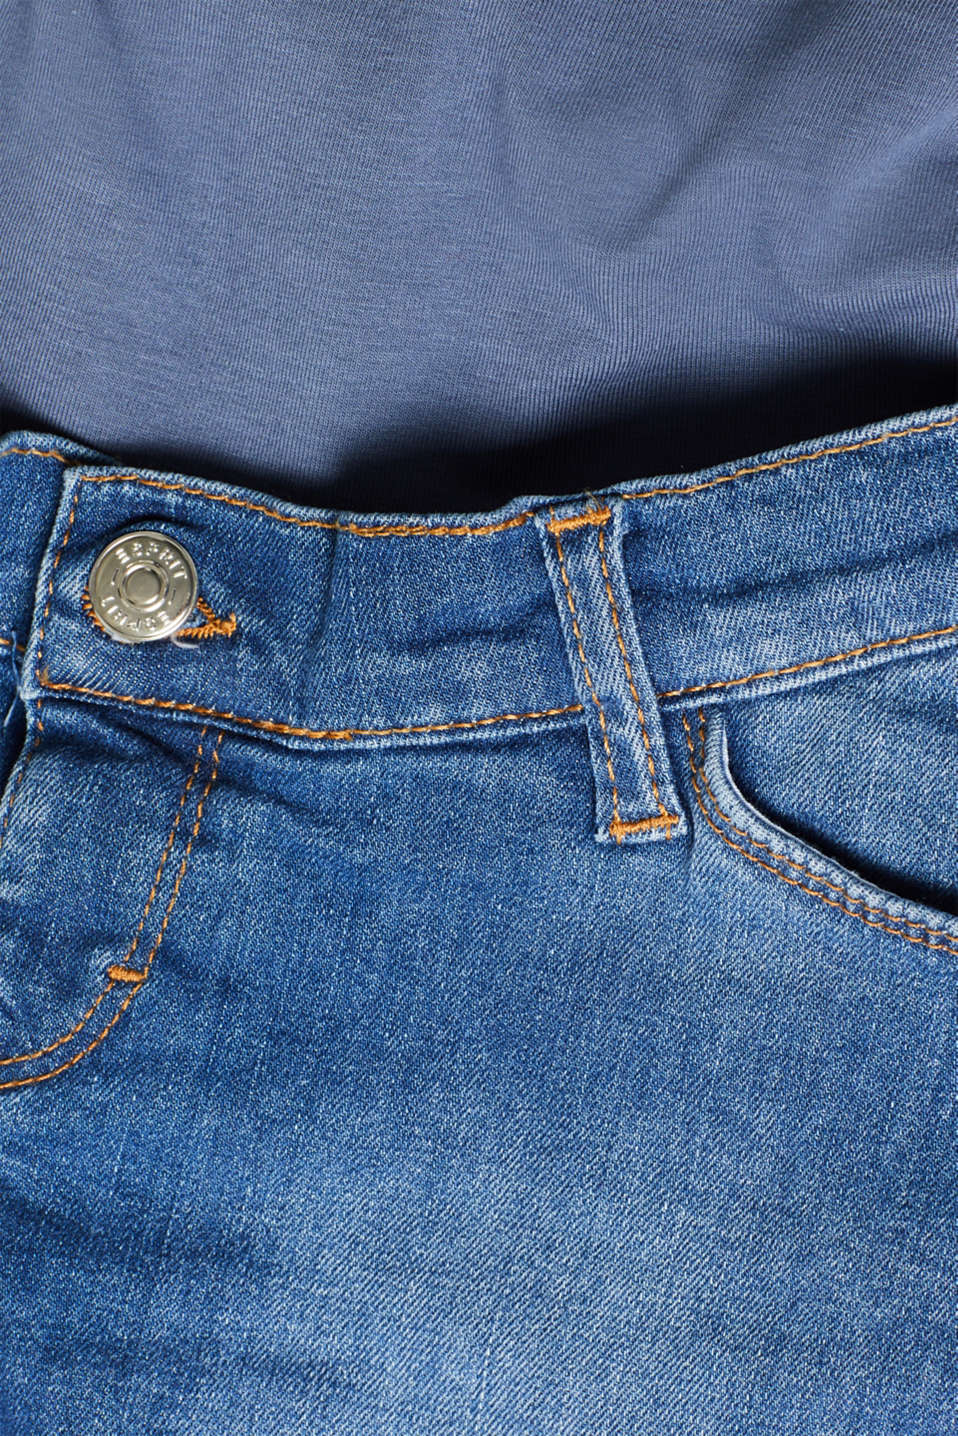 Stretch denim shorts, over-bump waistband, LCMEDIUM WASH, detail image number 4